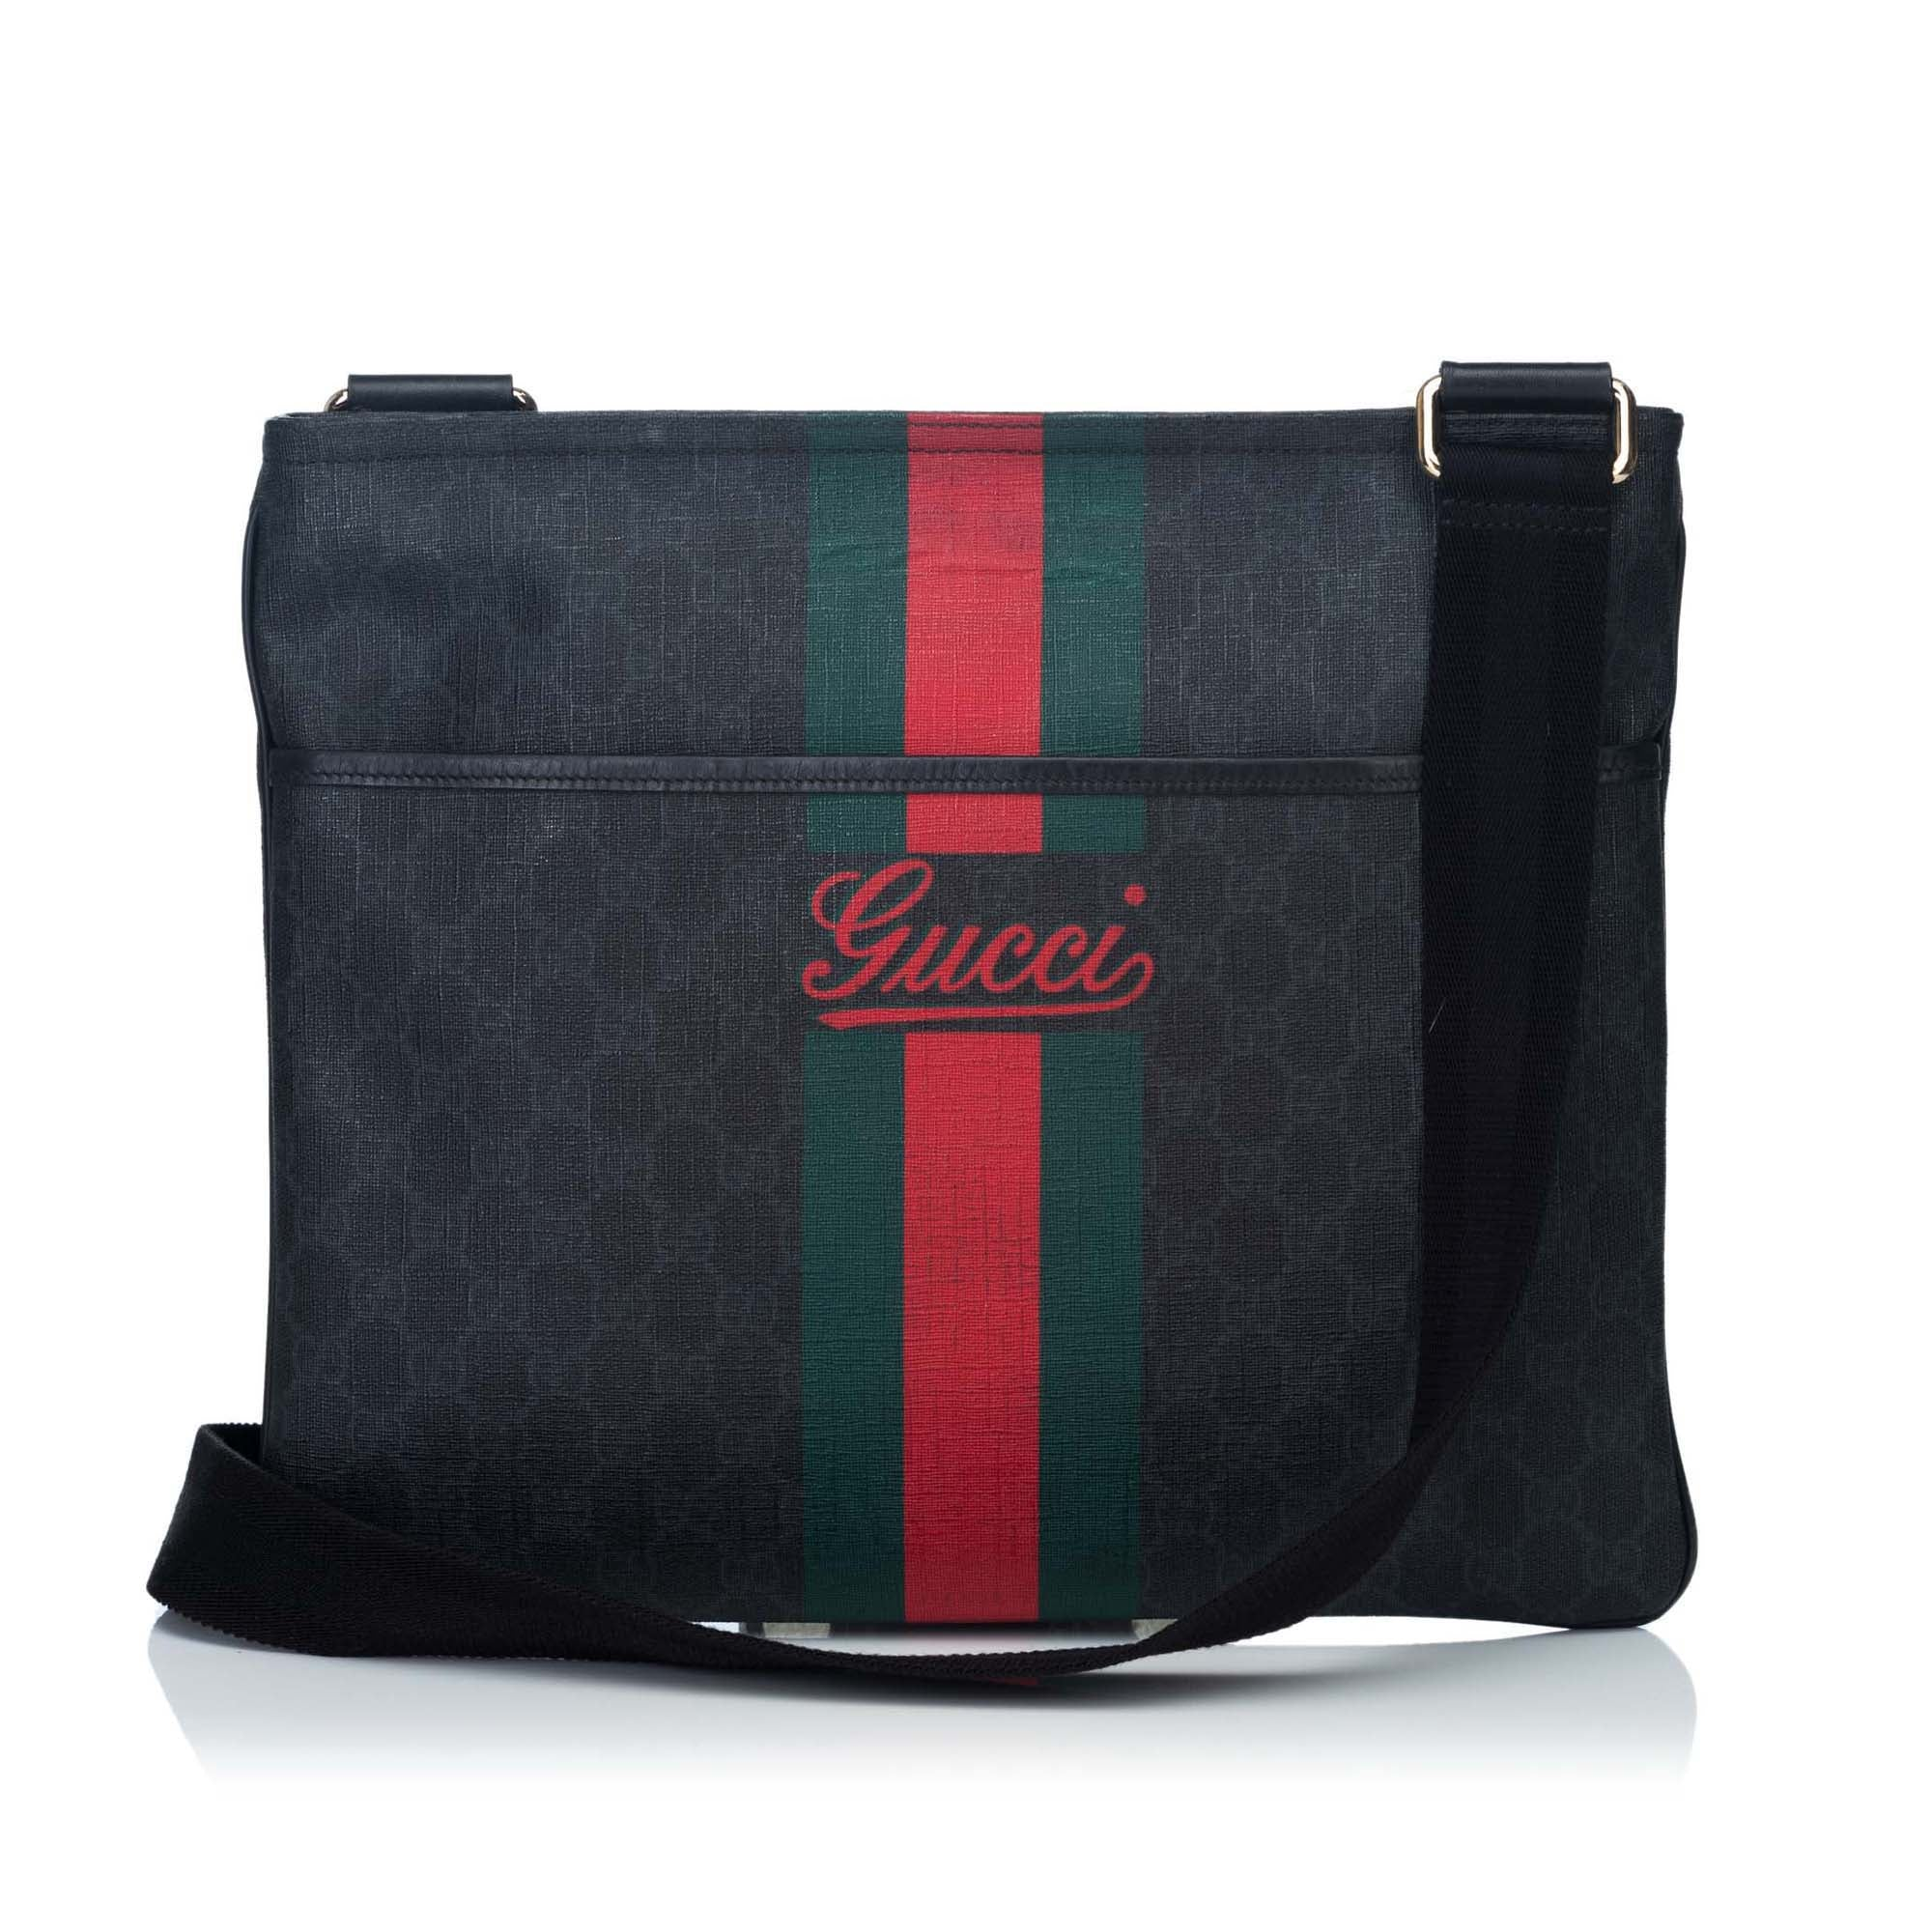 18119055b67 GUCCI SUPREME WEB MESSENGER BAG Shop online the best value on authentic  designer used preowned consignment ...